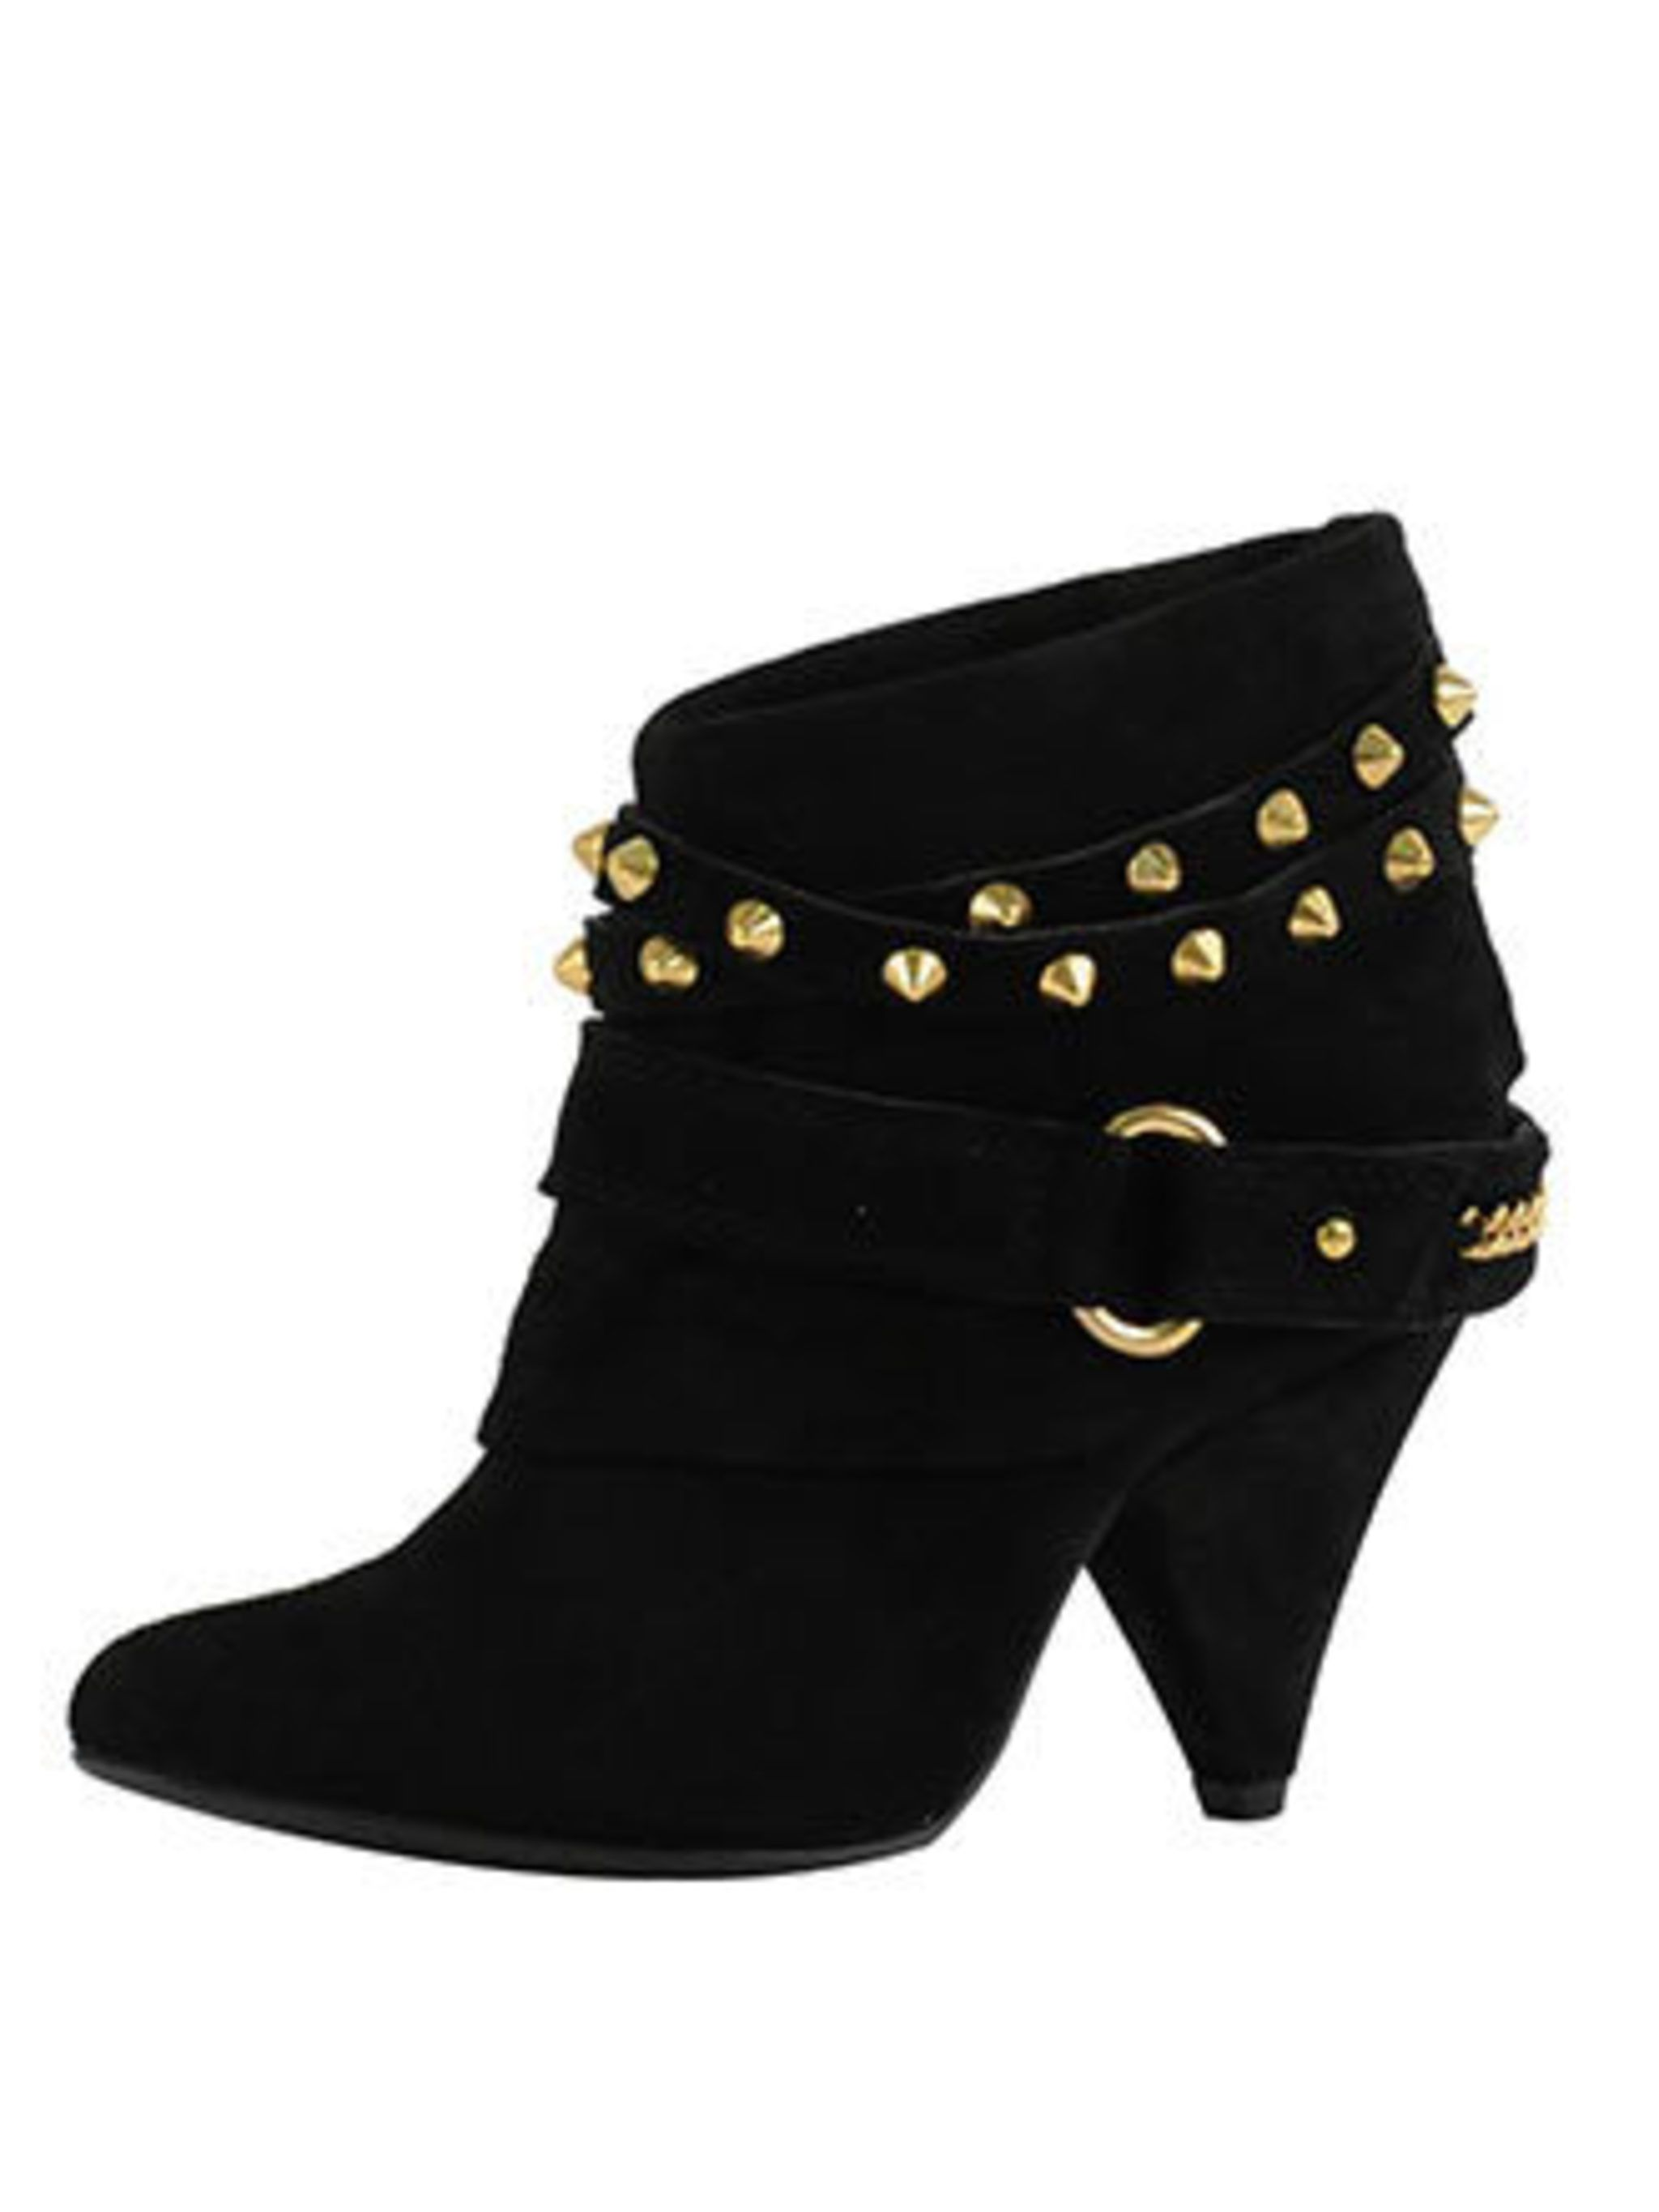 "<p>Cowgirl meets rock chick, the ELLE team love these boots. They will add edge to everything and aren't too high that you'll go skidding if it snows again. (Please, let it snow!)</p><p>Boots, £69.99 by <a href=""http://xml.riverisland.com/flash/content.ph"